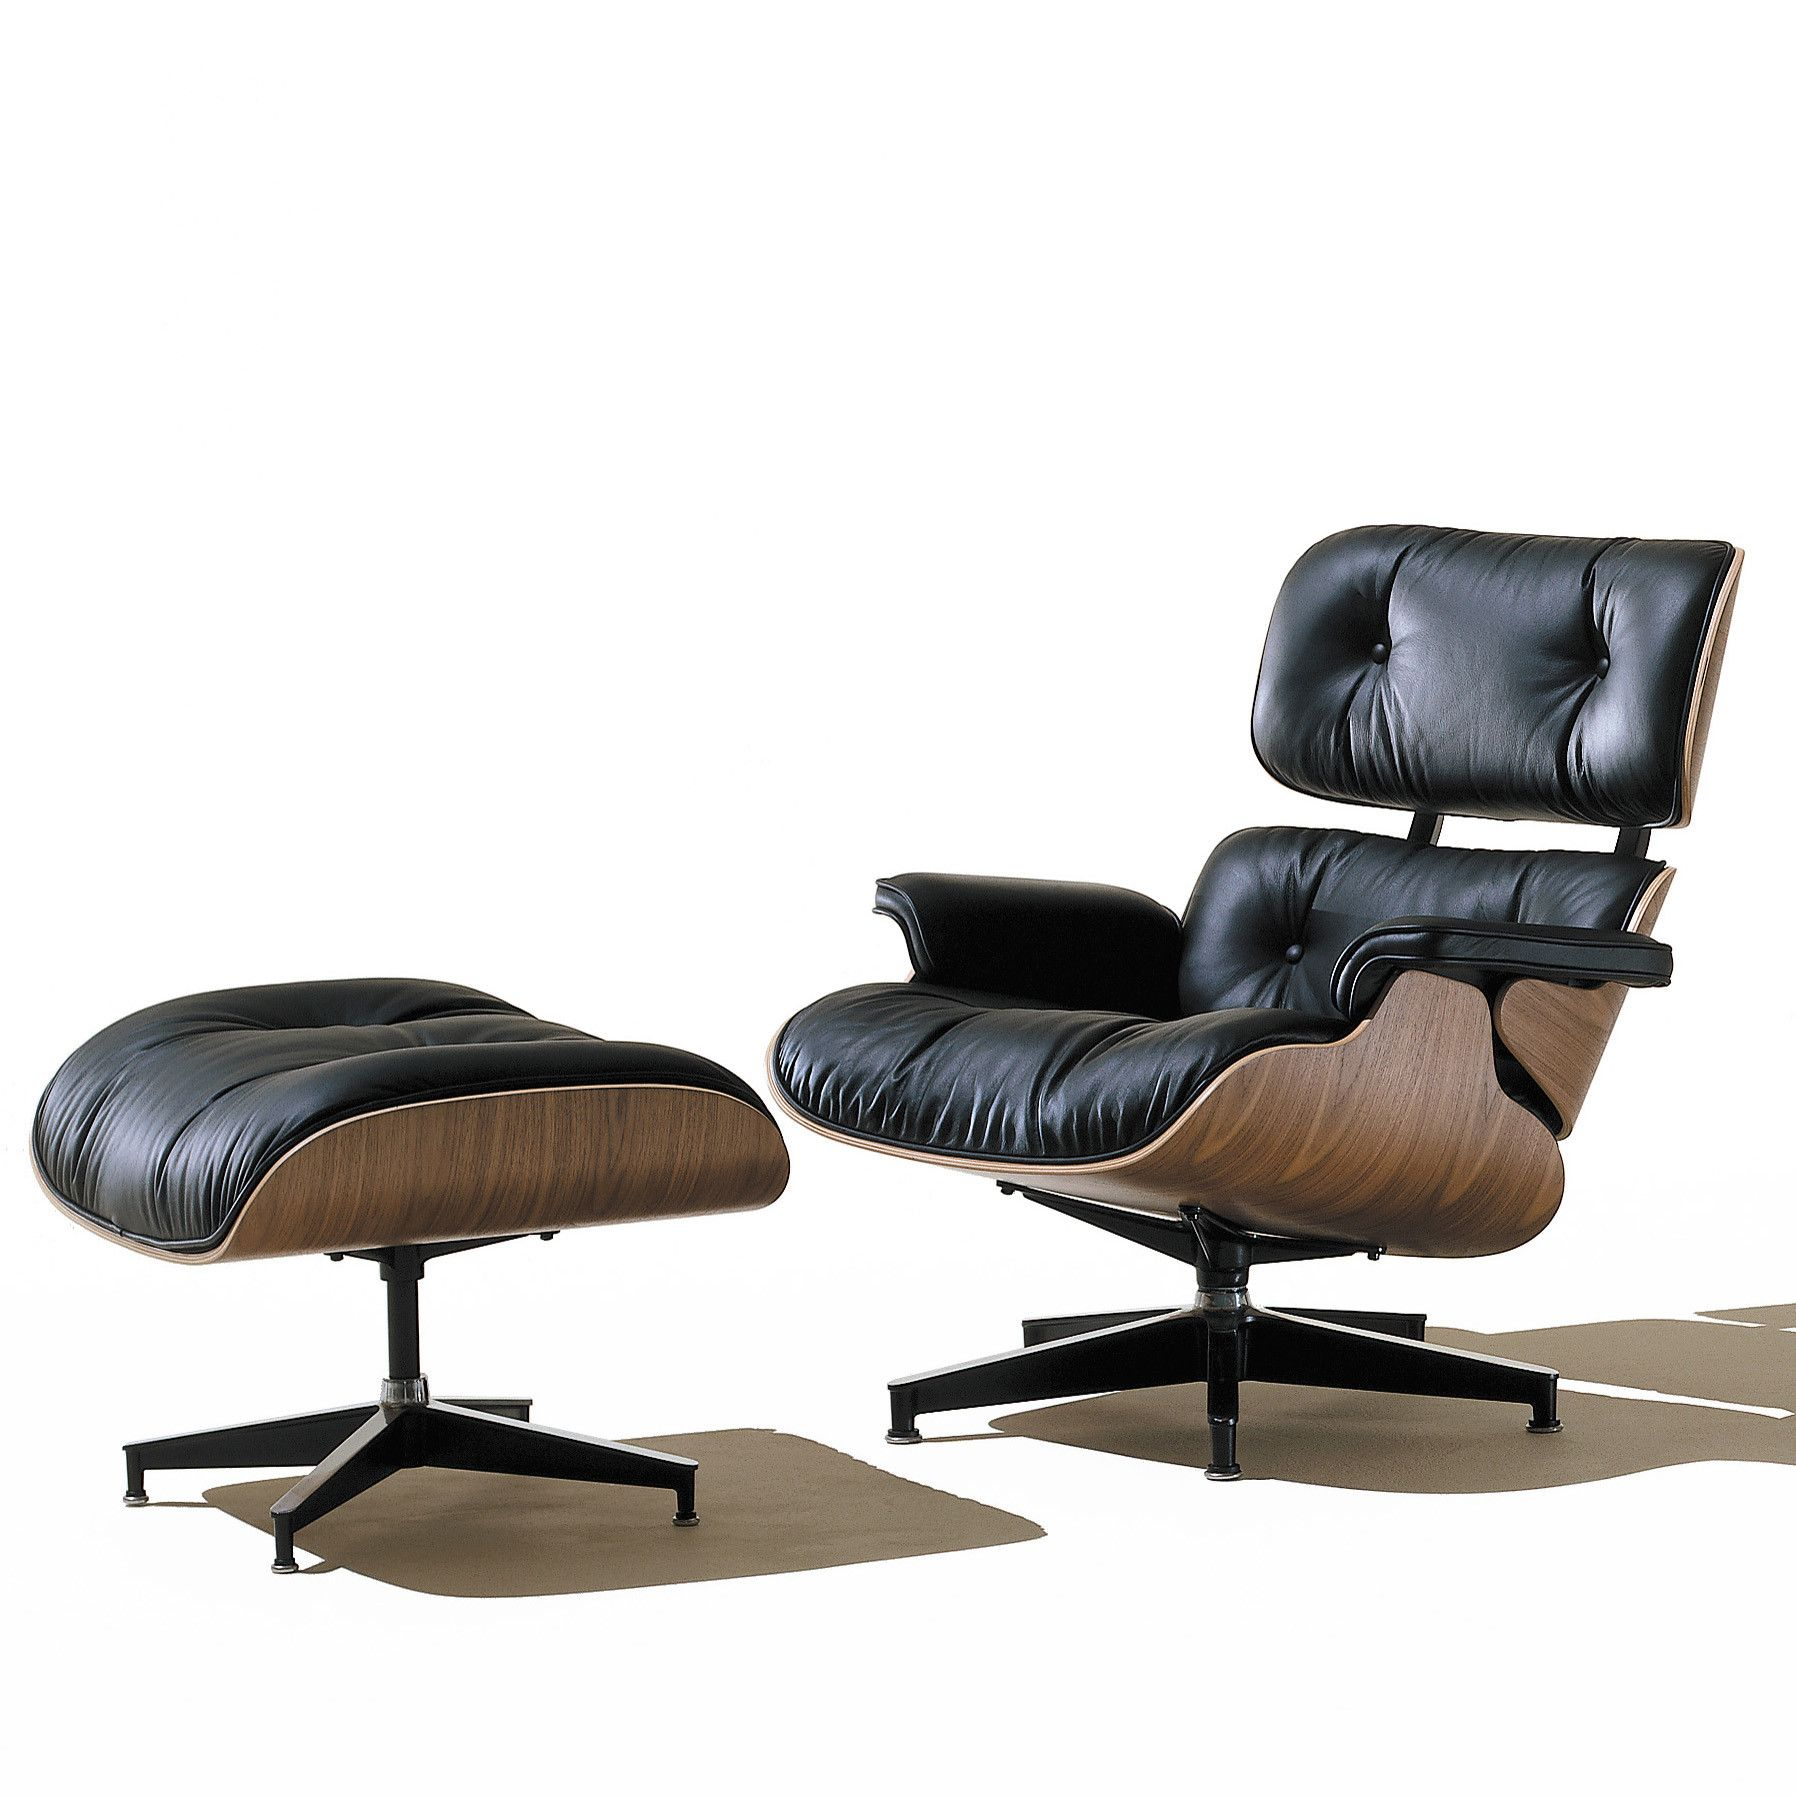 Herman Miller ® Eames Chair and Ottoman AllModern